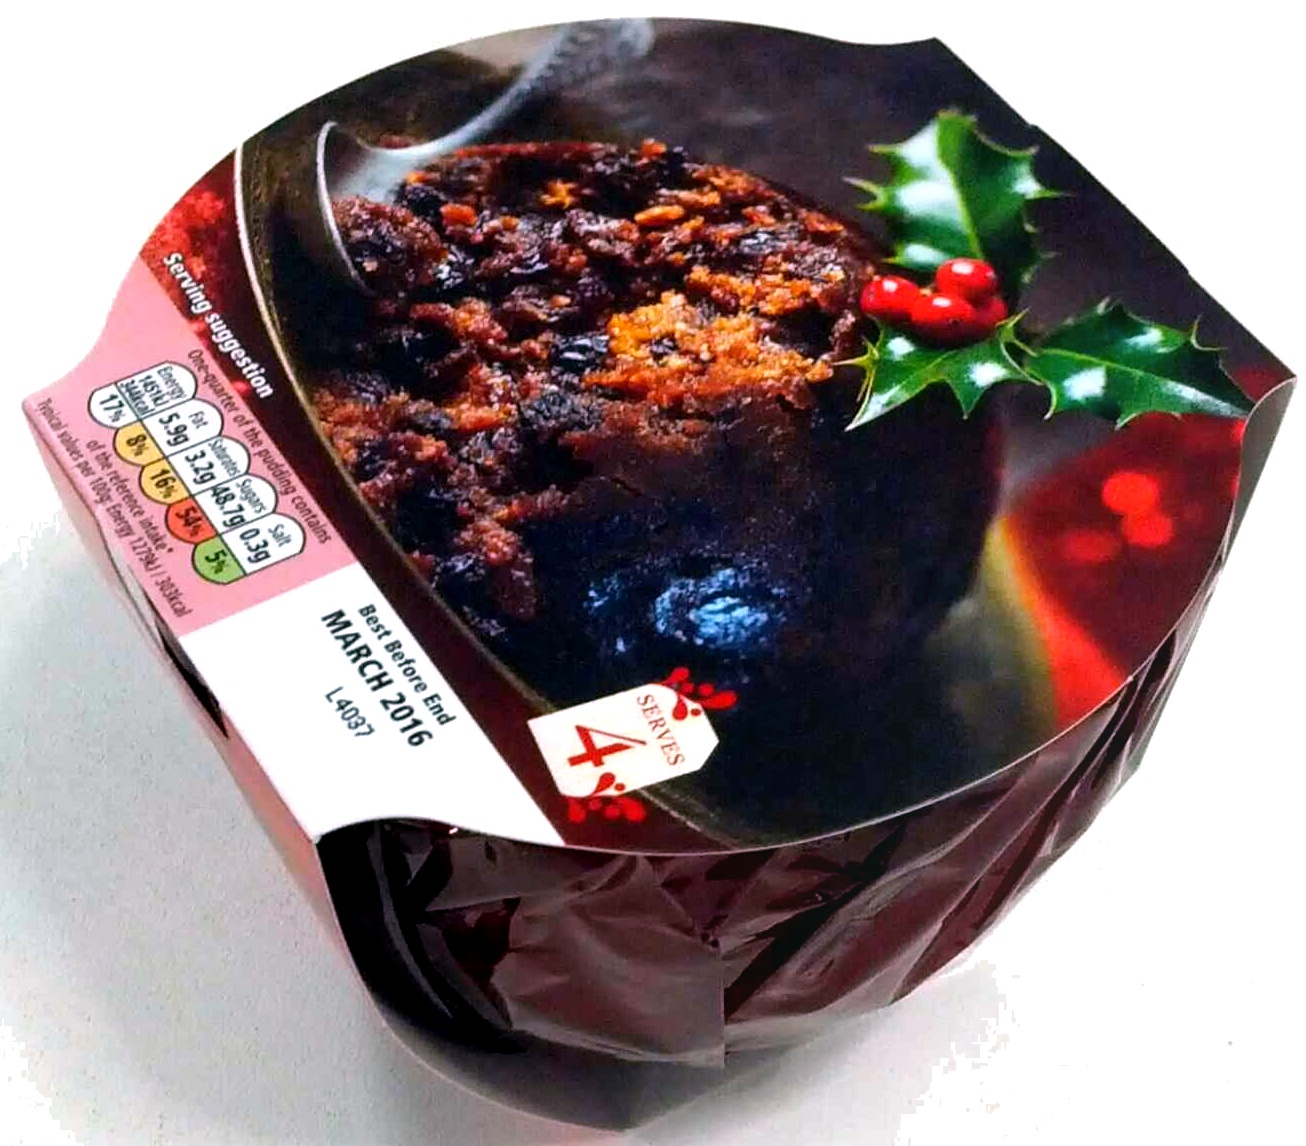 6 month matured Christmas Pudding with Cider and Brandy - Product - en